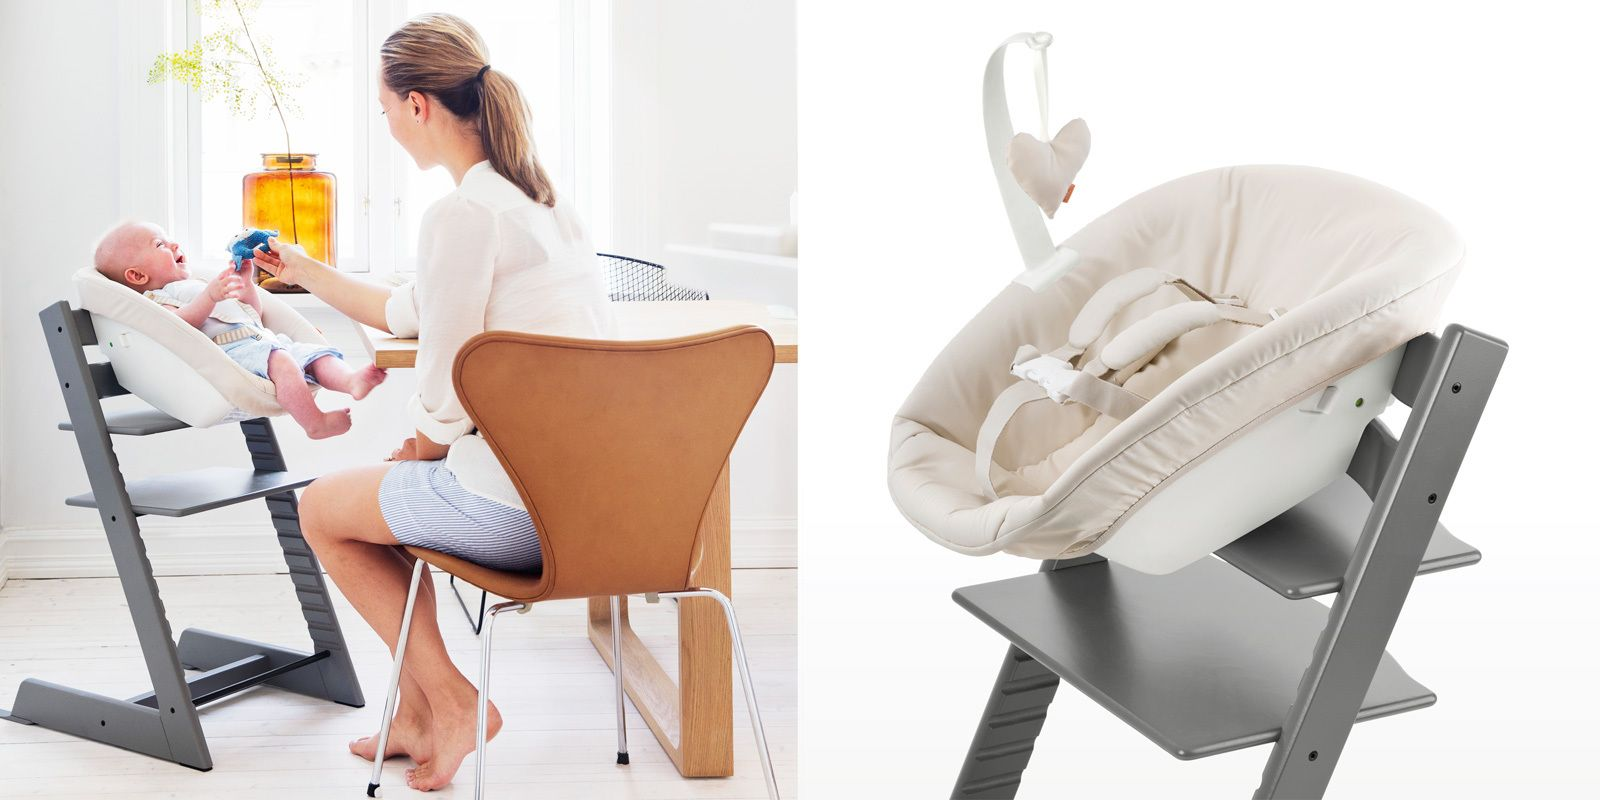 Enter To Win Your Own Tripp Trapp Style Baby Chair Baby High Chair Tripp Trapp Chair